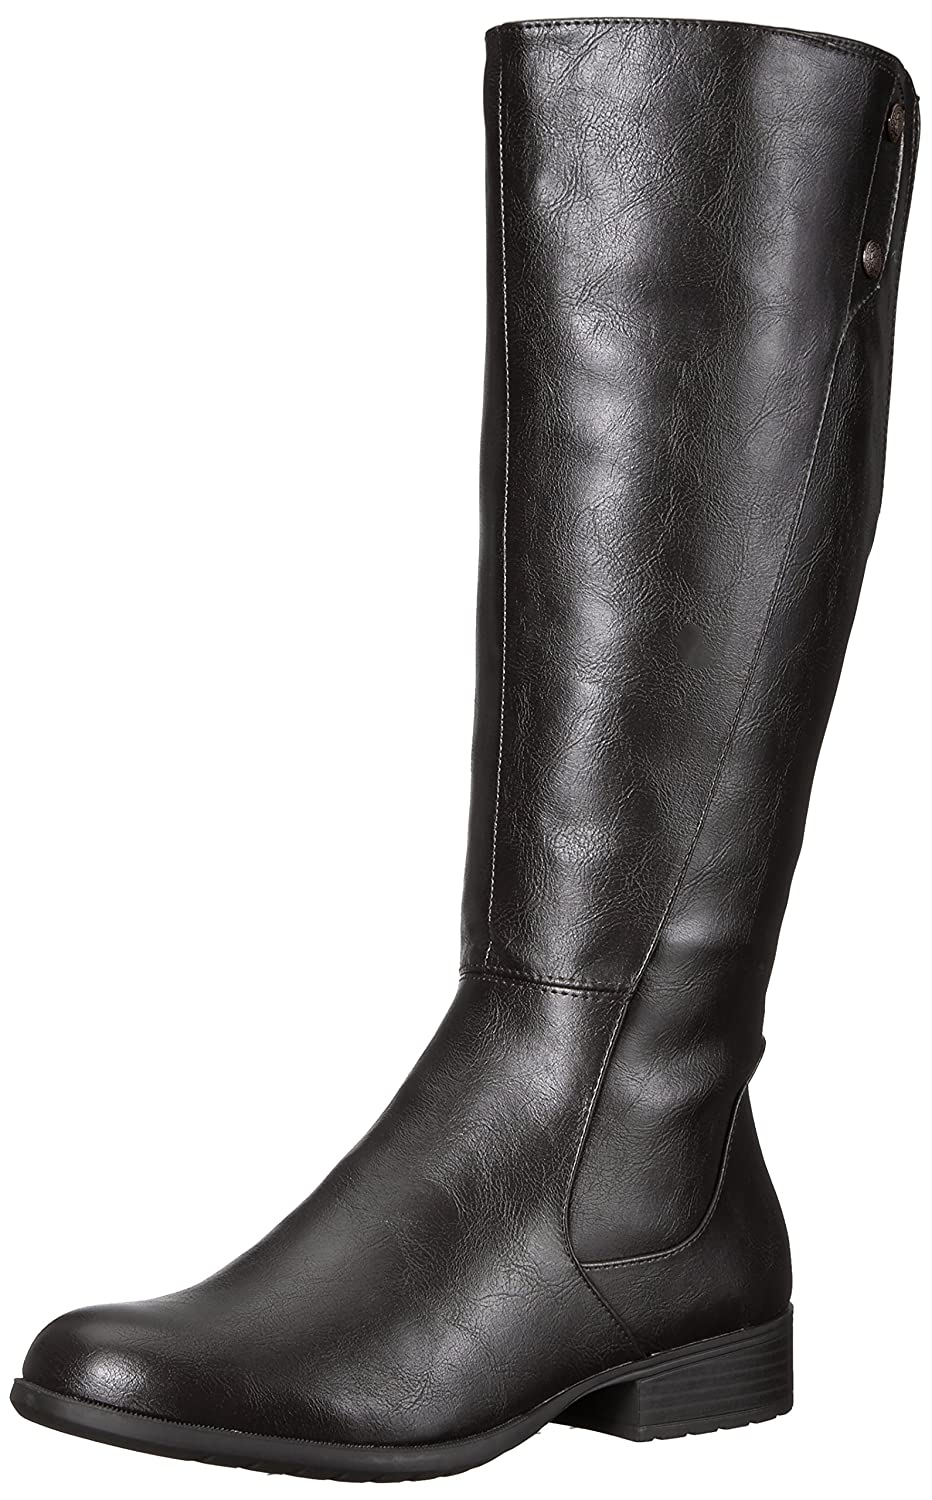 LifeStride Women's Xripley Riding Boot B071WVP8L9 8 B(M) US|Black 1